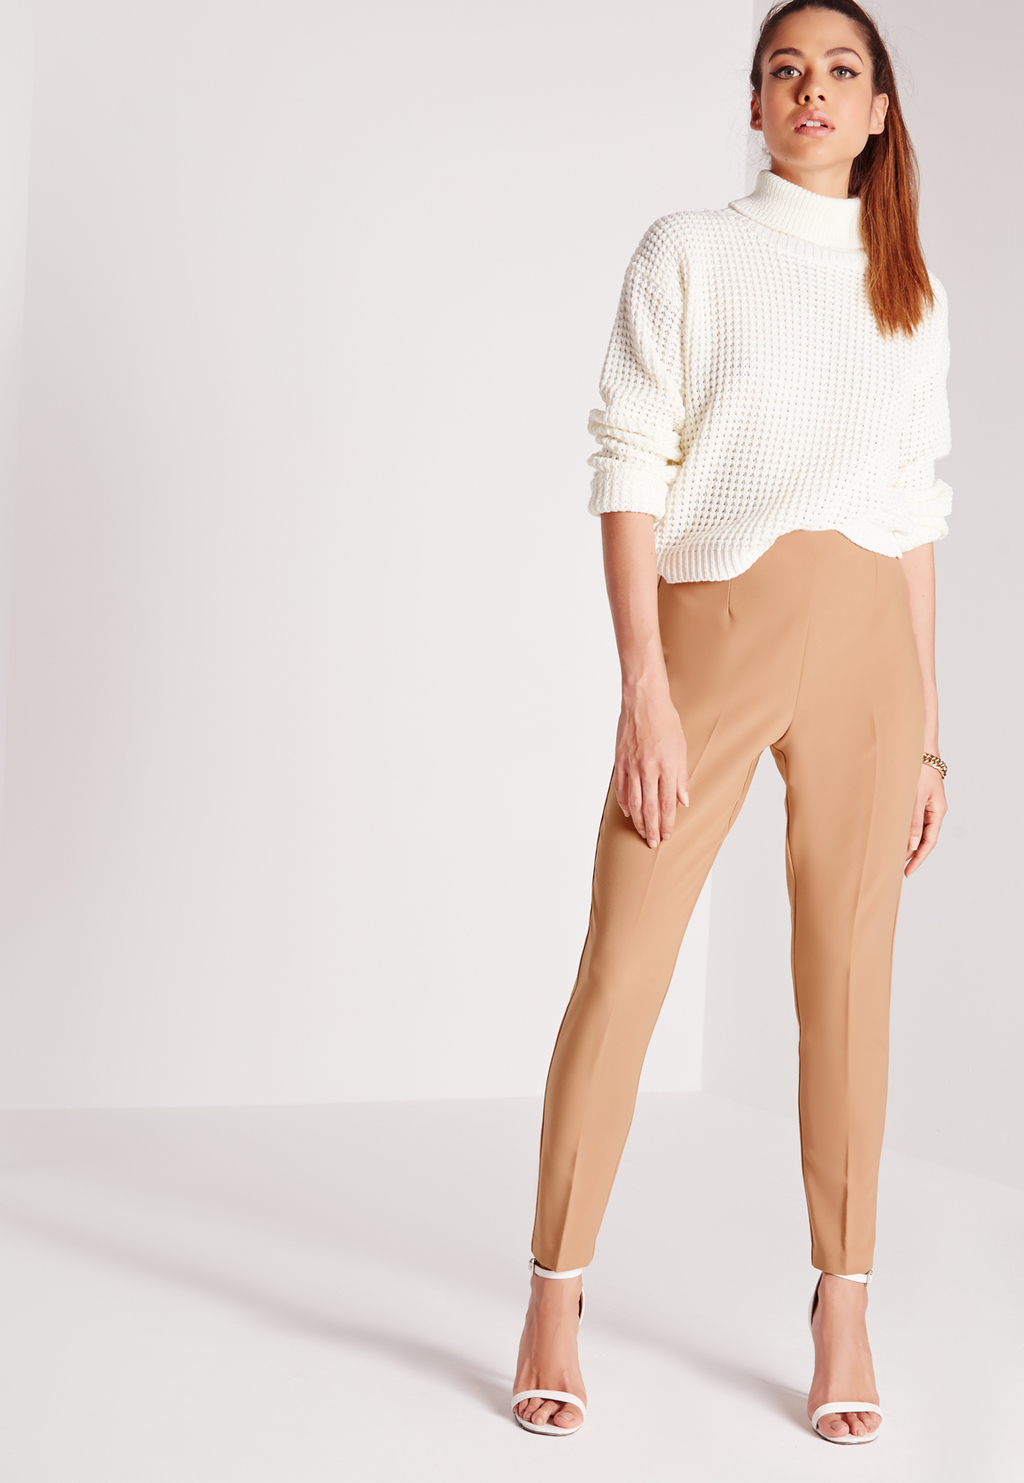 High Waist Cigarette Trousers Camel, Beige - pattern: plain; style: peg leg; waist: high rise; predominant colour: camel; occasions: casual, creative work; length: ankle length; fibres: polyester/polyamide - 100%; texture group: crepes; fit: tapered; pattern type: fabric; season: s/s 2016; wardrobe: basic